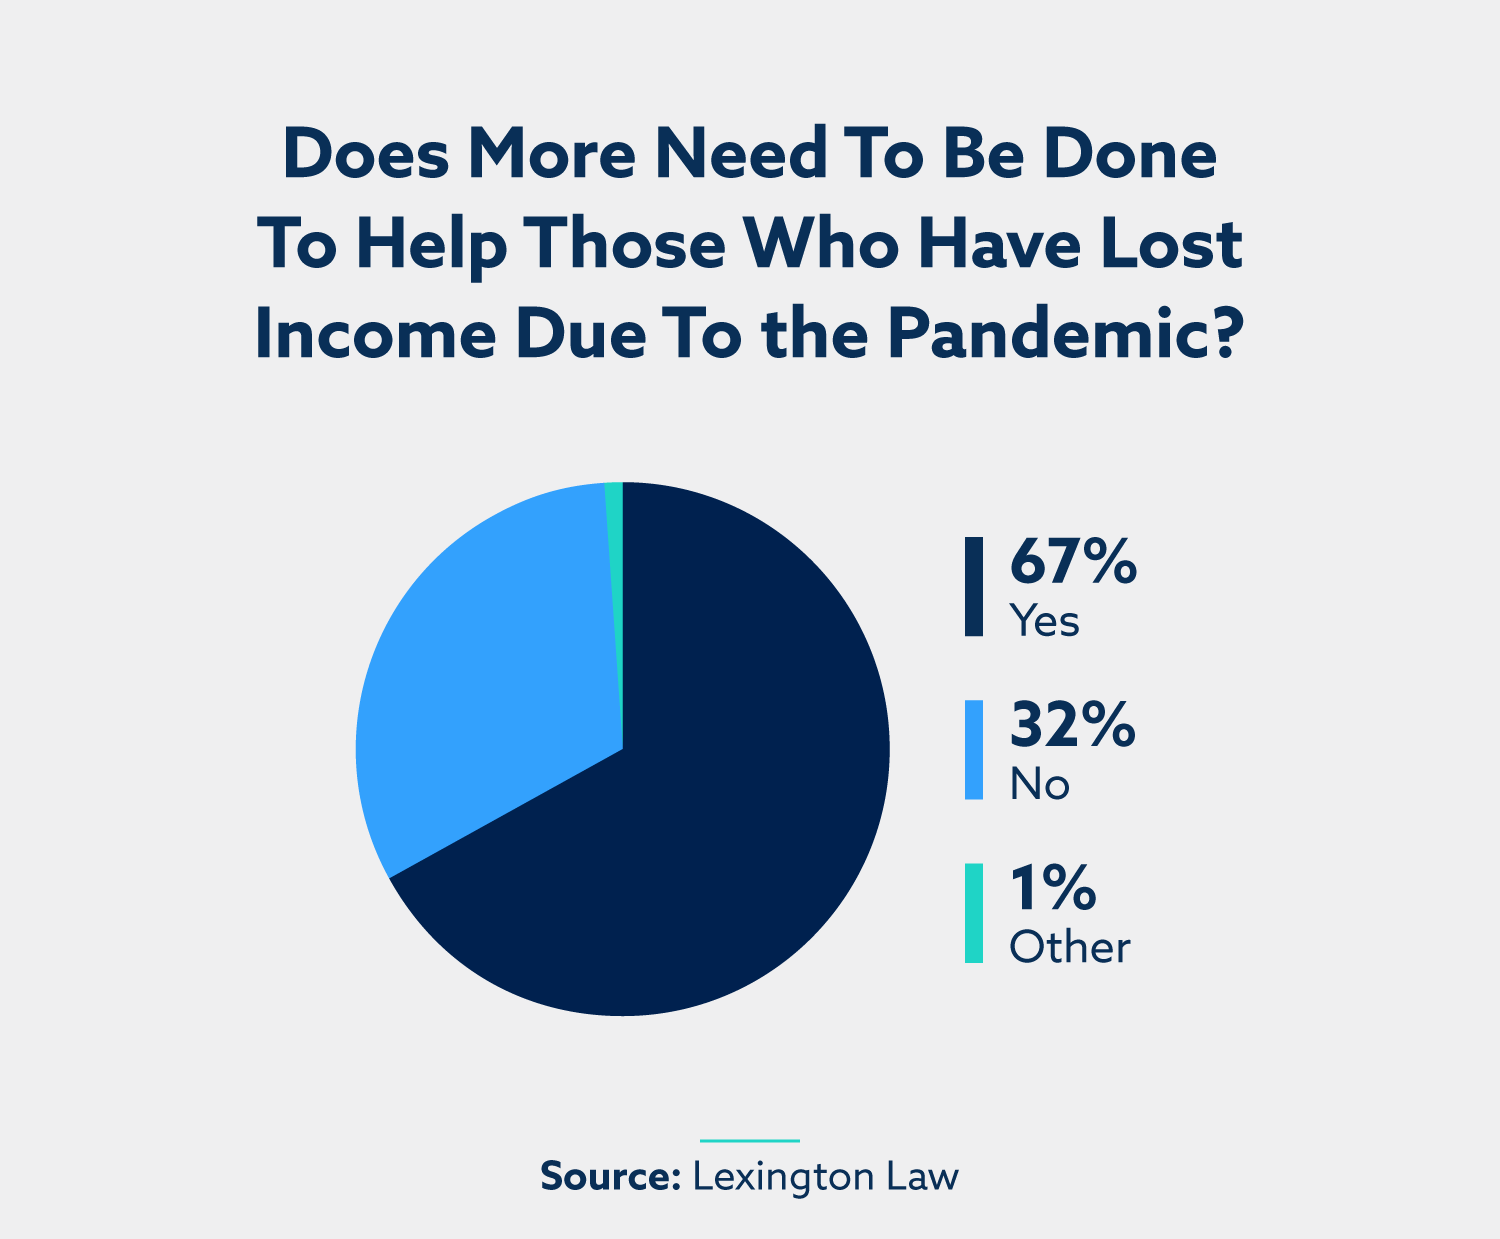 Does more need to be done to help those who have lost income due to the pandemic? Lexington Law survey results: Yes: 67%. No: 32%. Other: 1%.